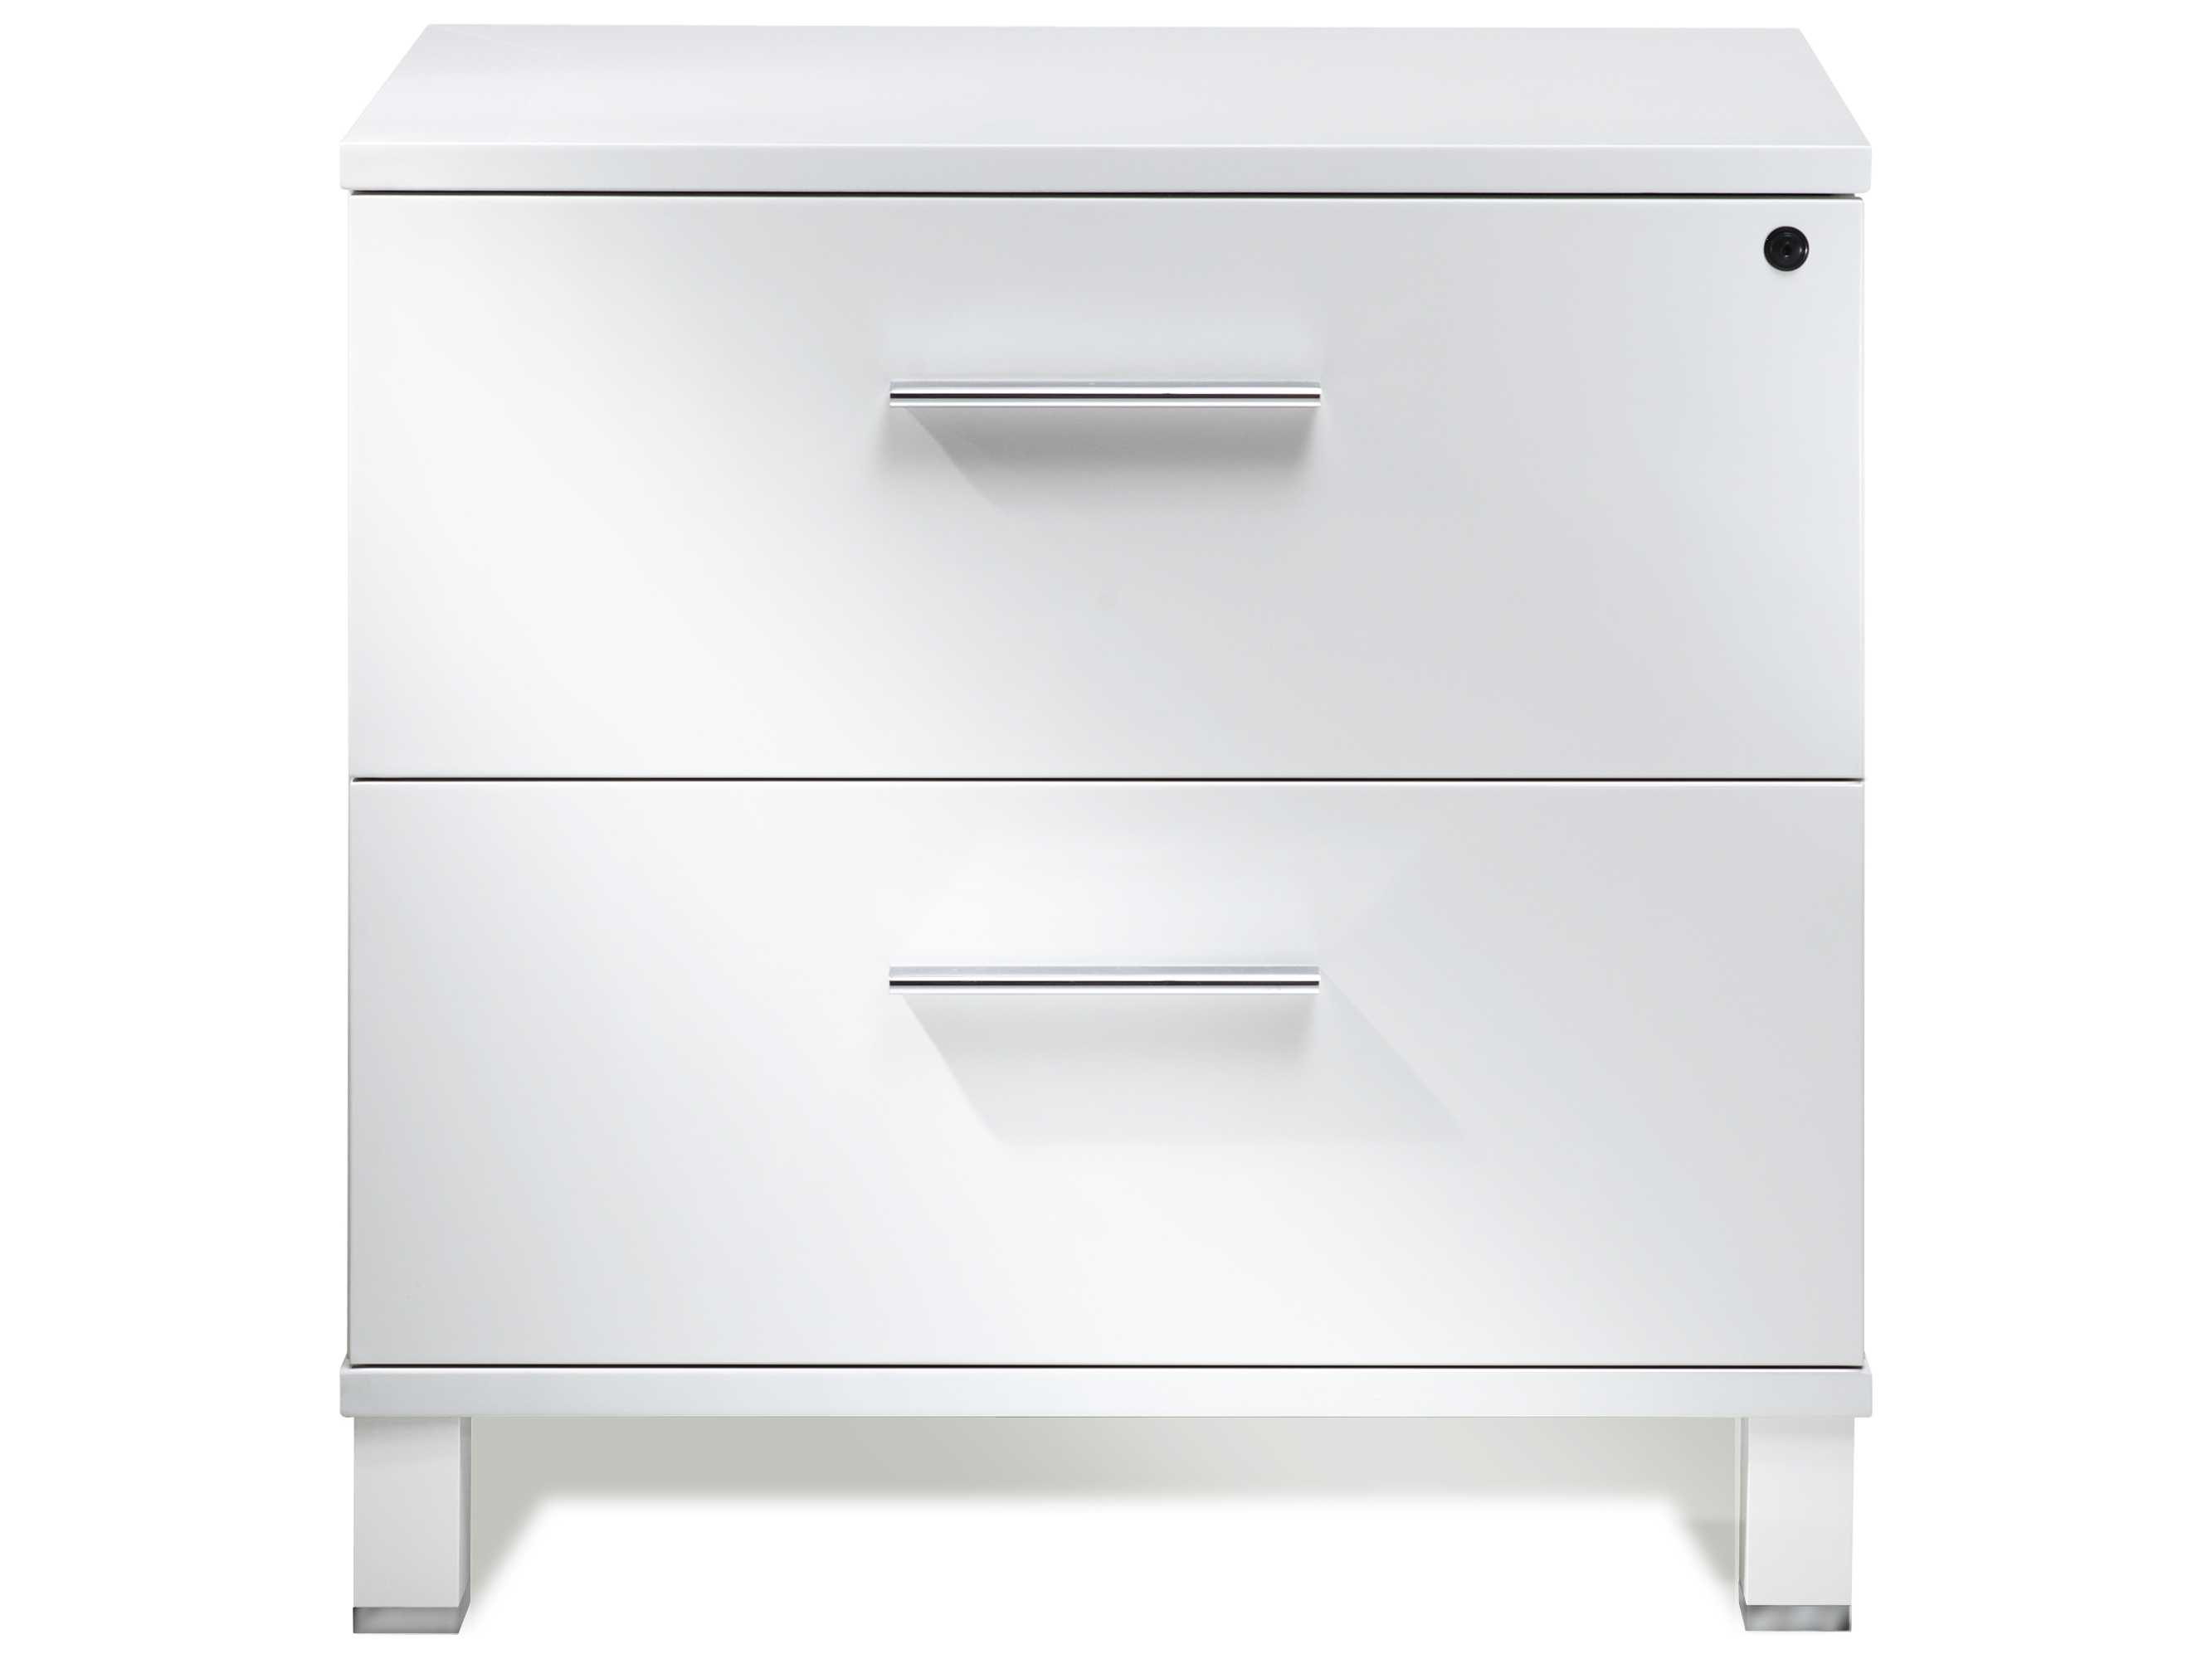 Creative File Cabinets  Home Amp Office Storage Furniture On SALE From Bellacor